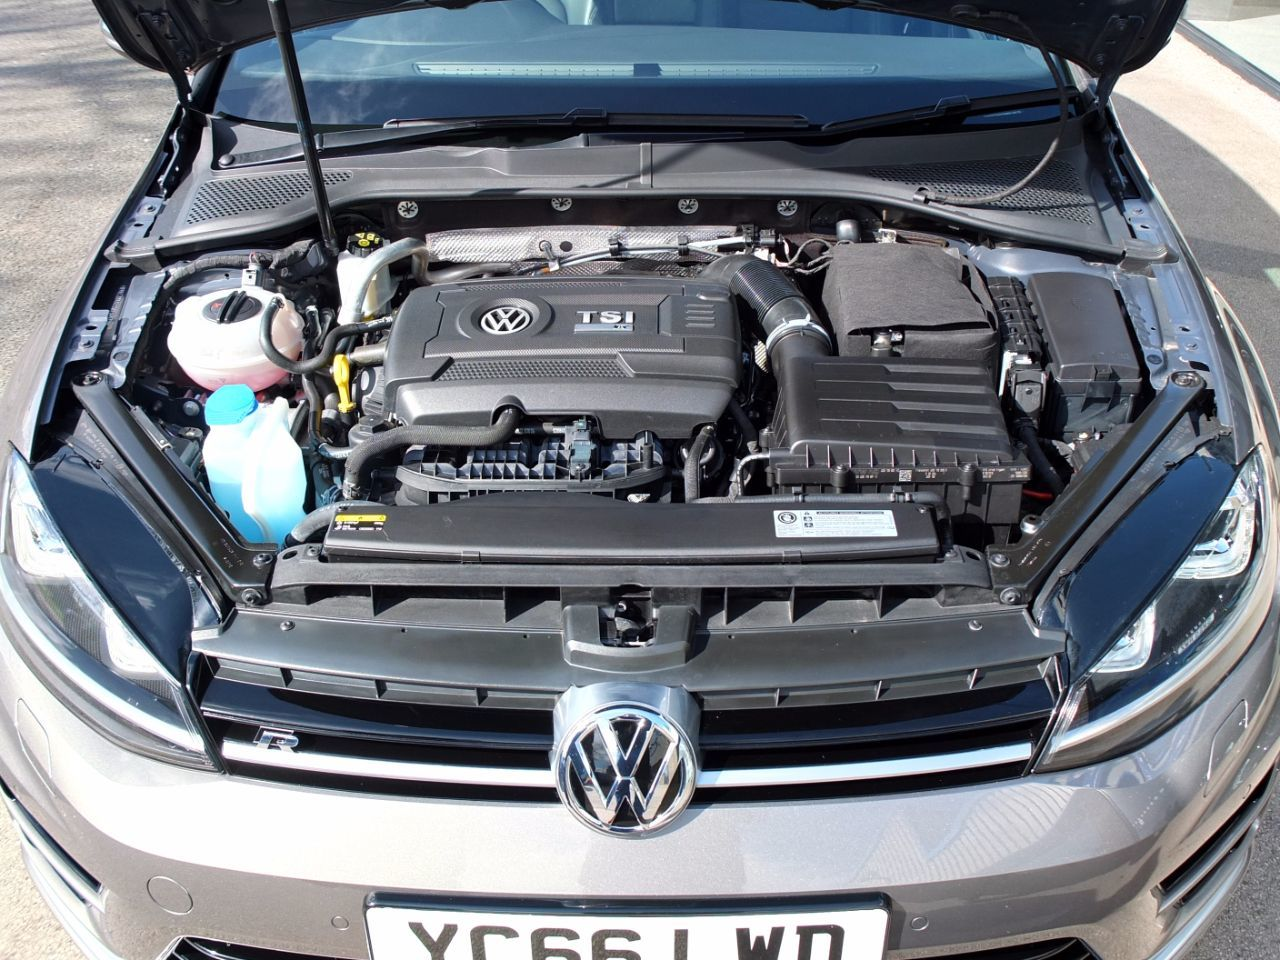 Volkswagen Golf 2.0 TSI R 4MOTION 5 Door DSG 300ps Hatchback Petrol Limestone Grey Metallic